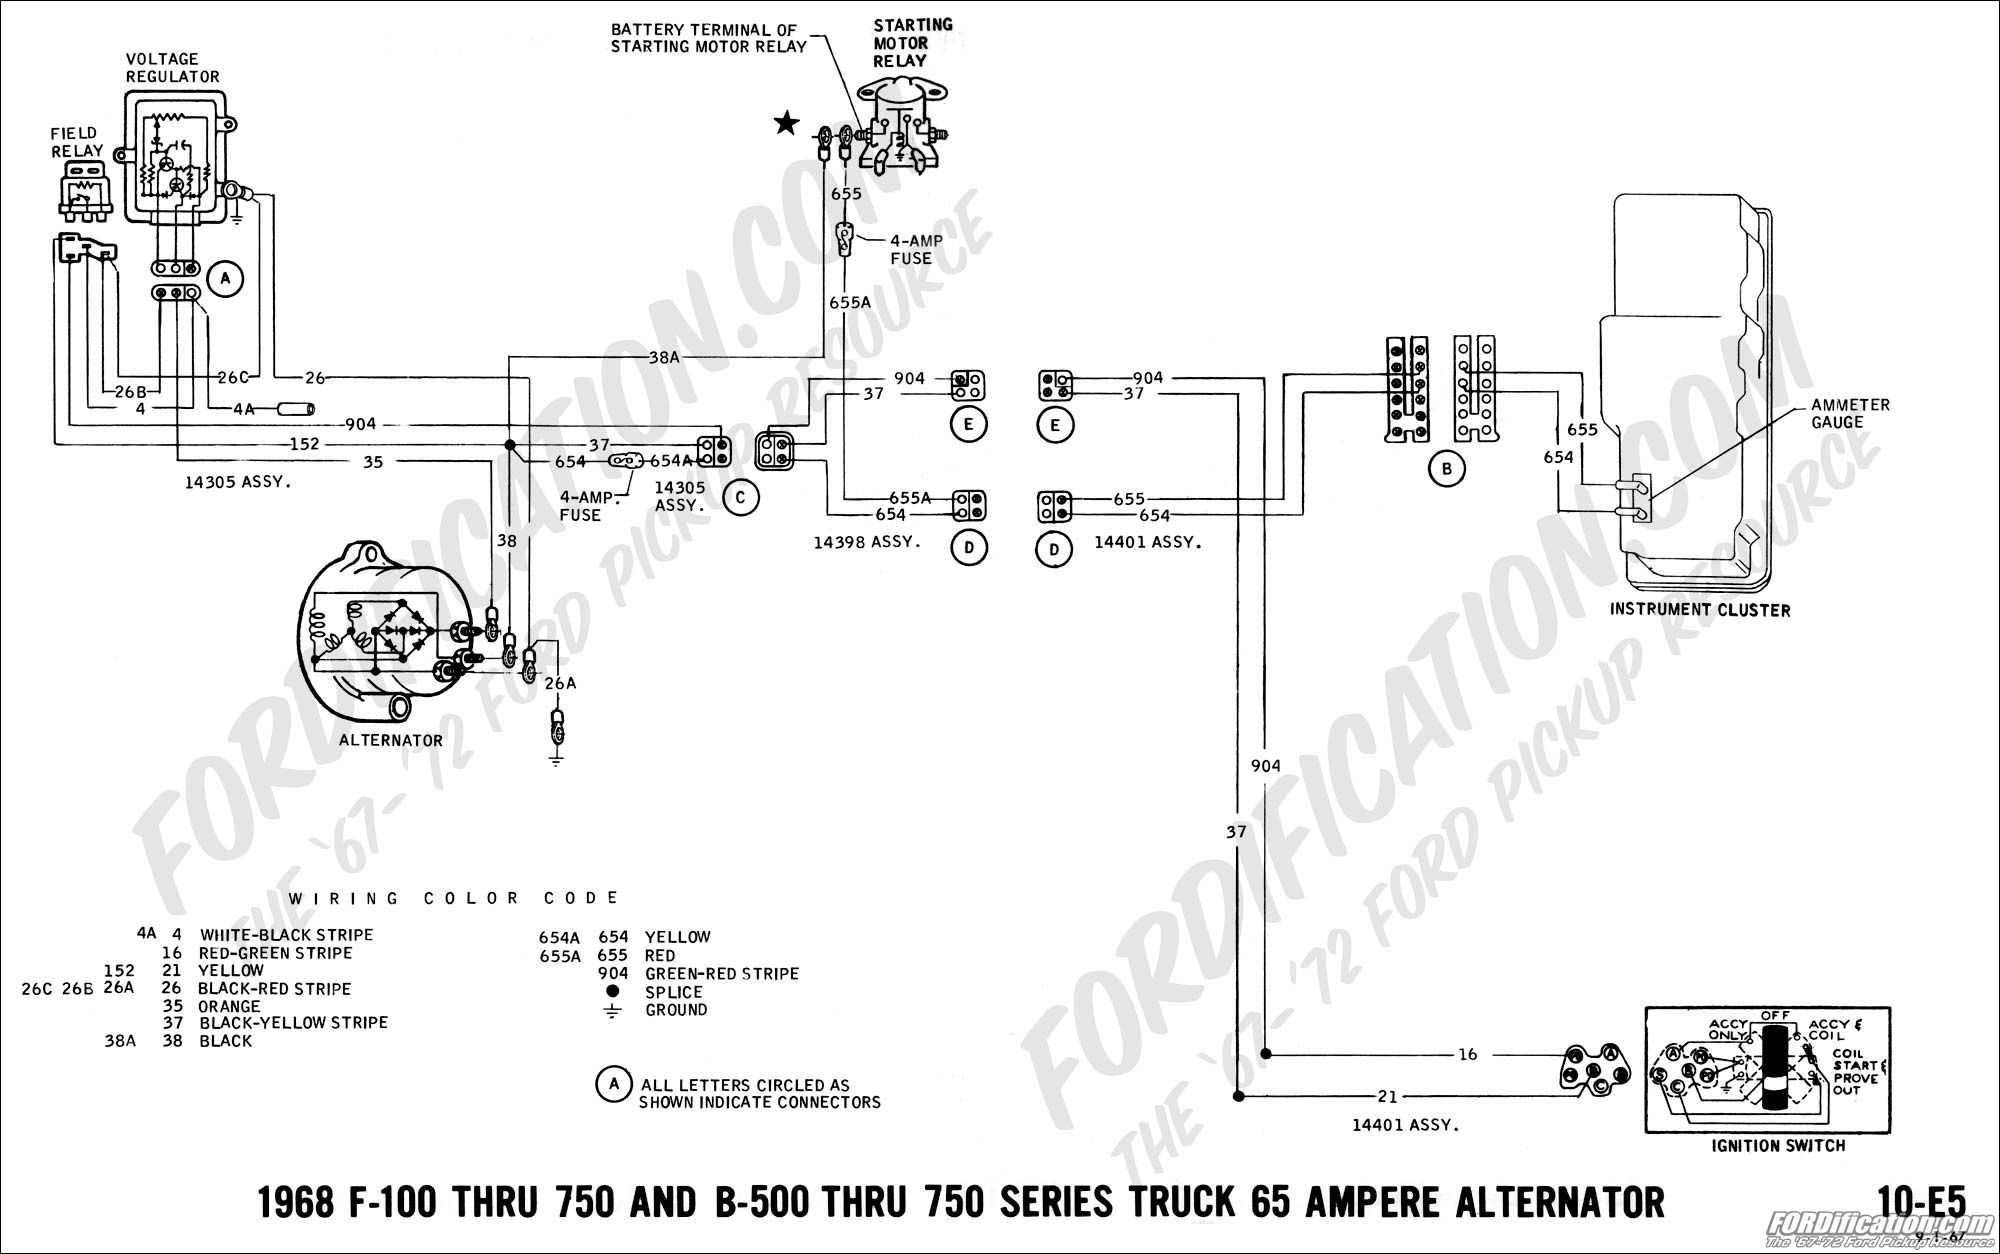 68 Ford Alternator Wiring Diagram | Trailer wiring diagram ...  Mustang Door Switch Wiring Diagram on